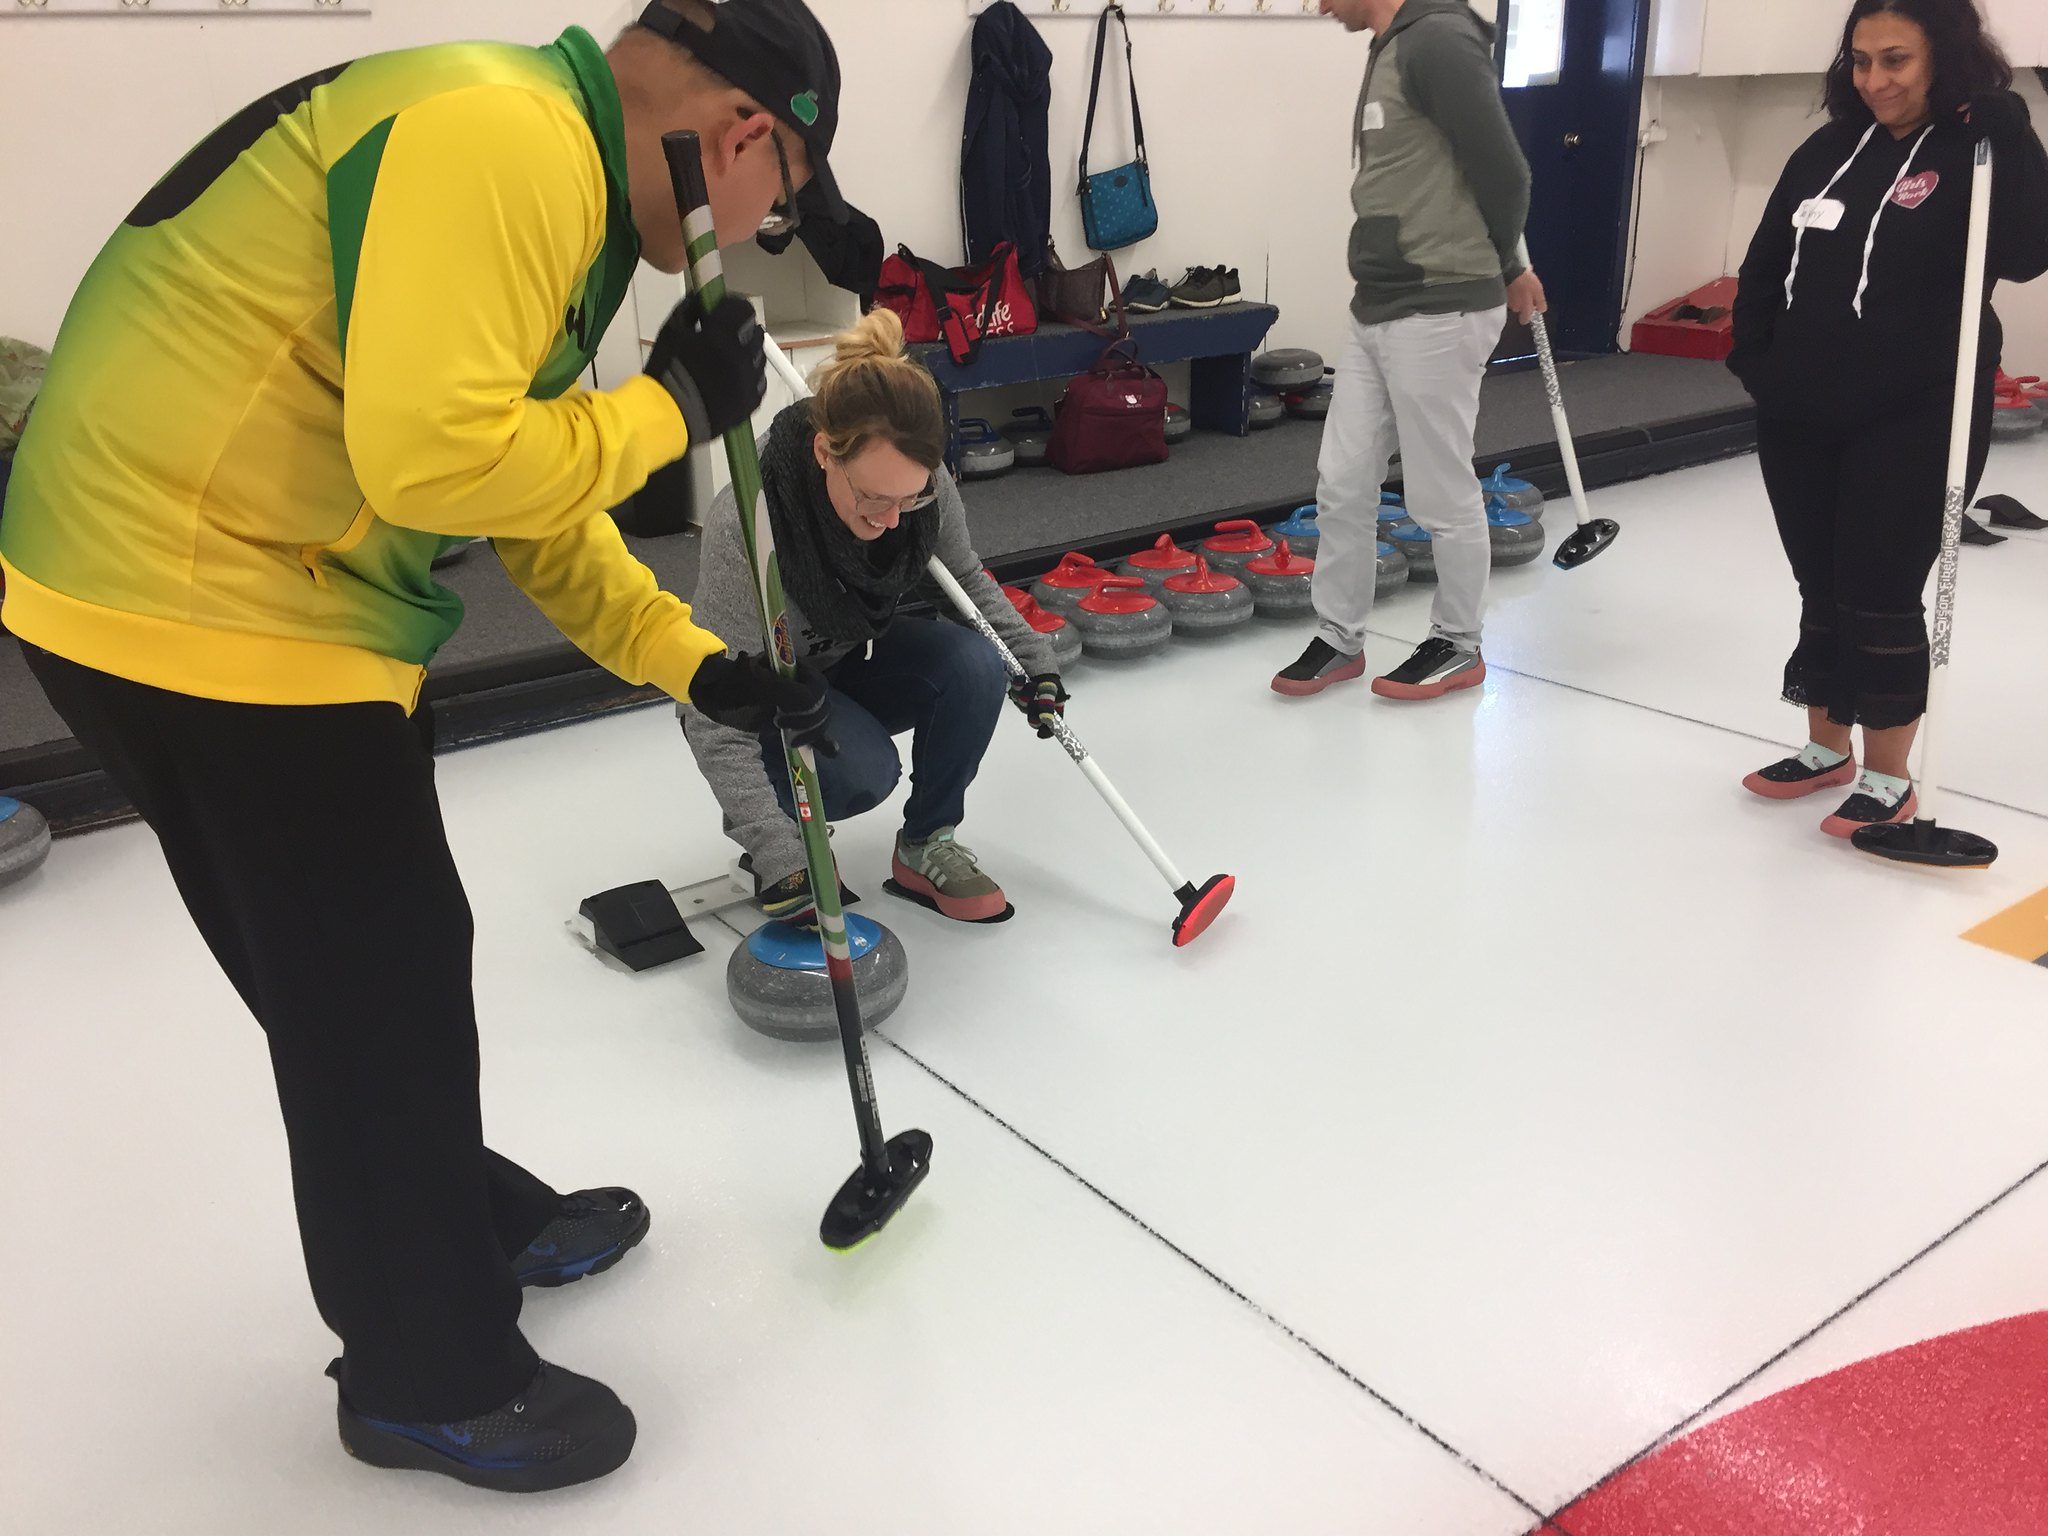 Being taught how to deliver the stone in curling